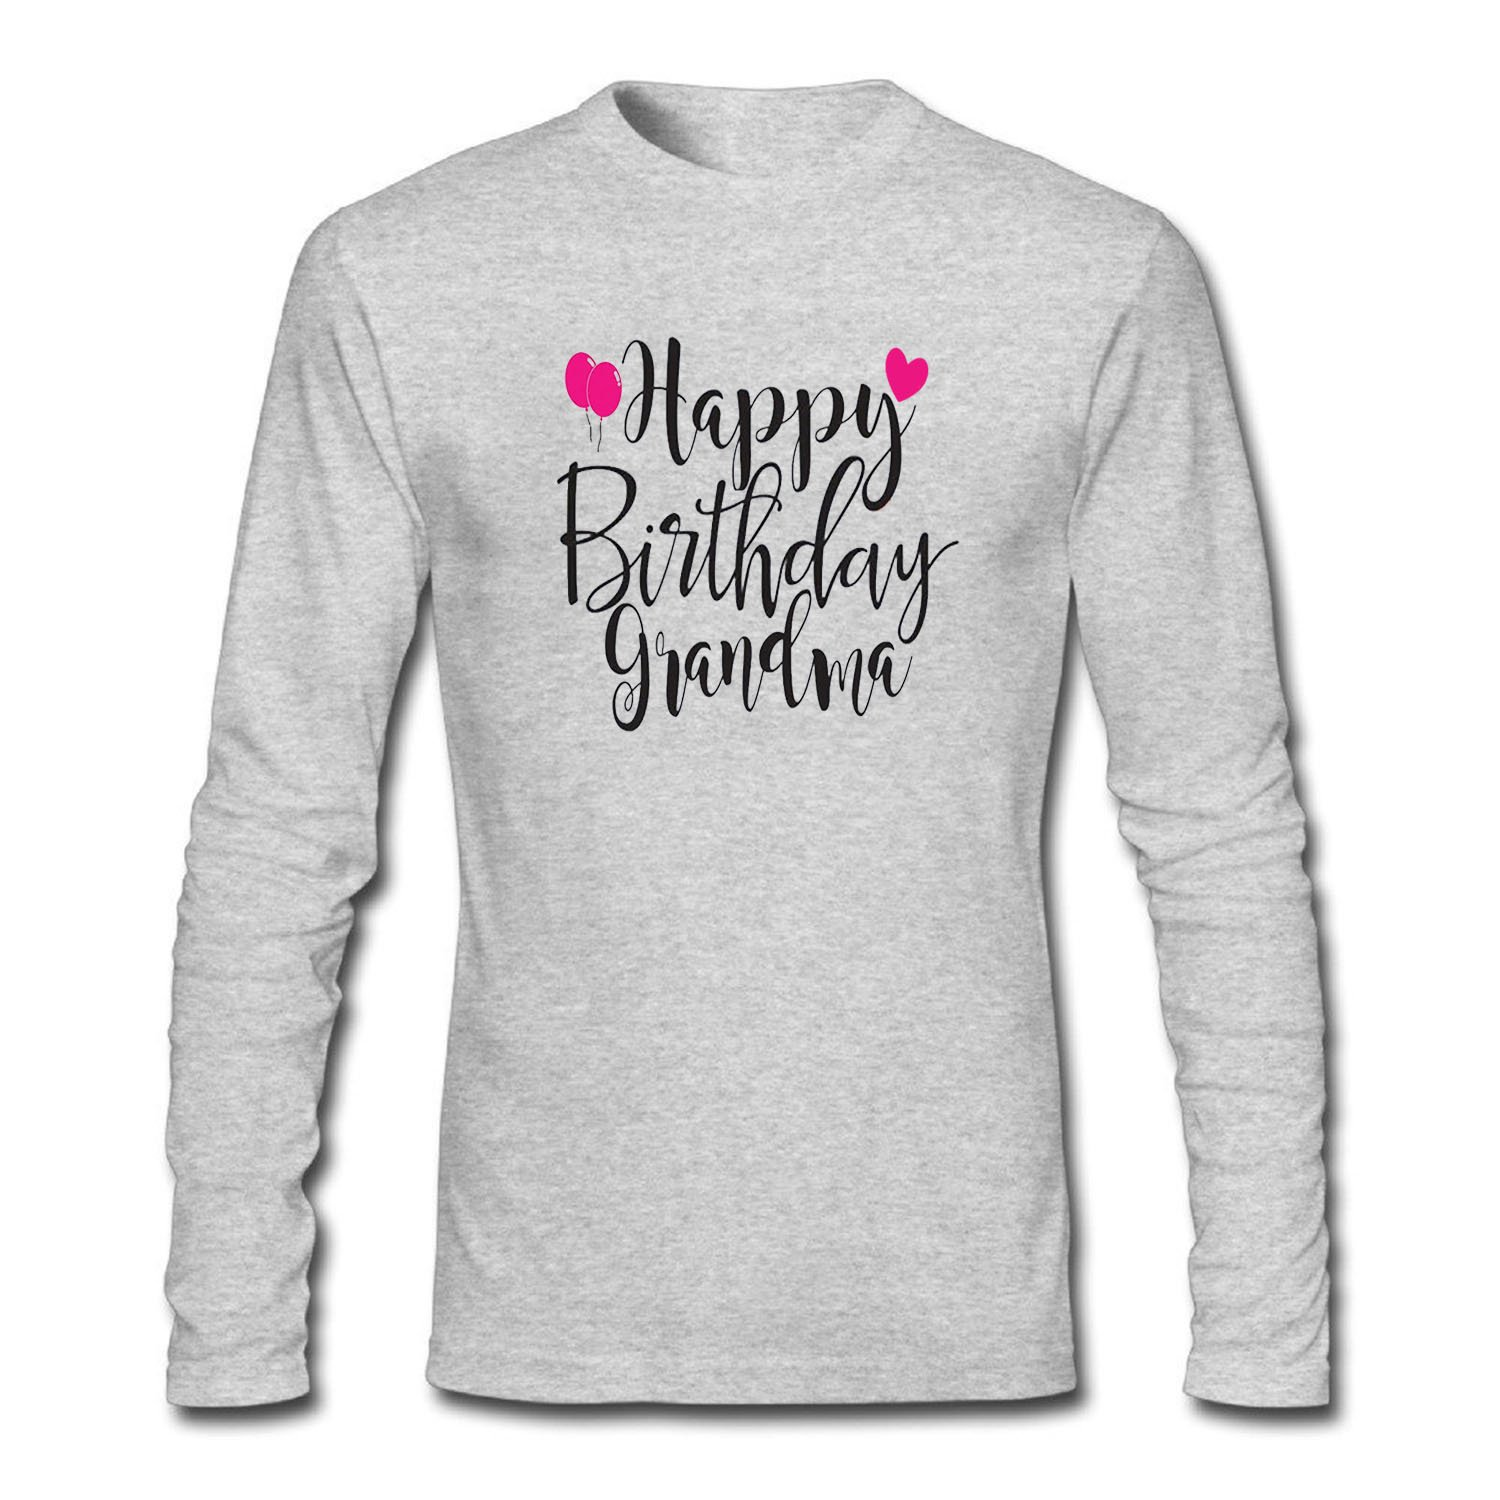 Amazon WENL Mens Happy Birthday Grandma Long Sleeve T Shirt Clothing